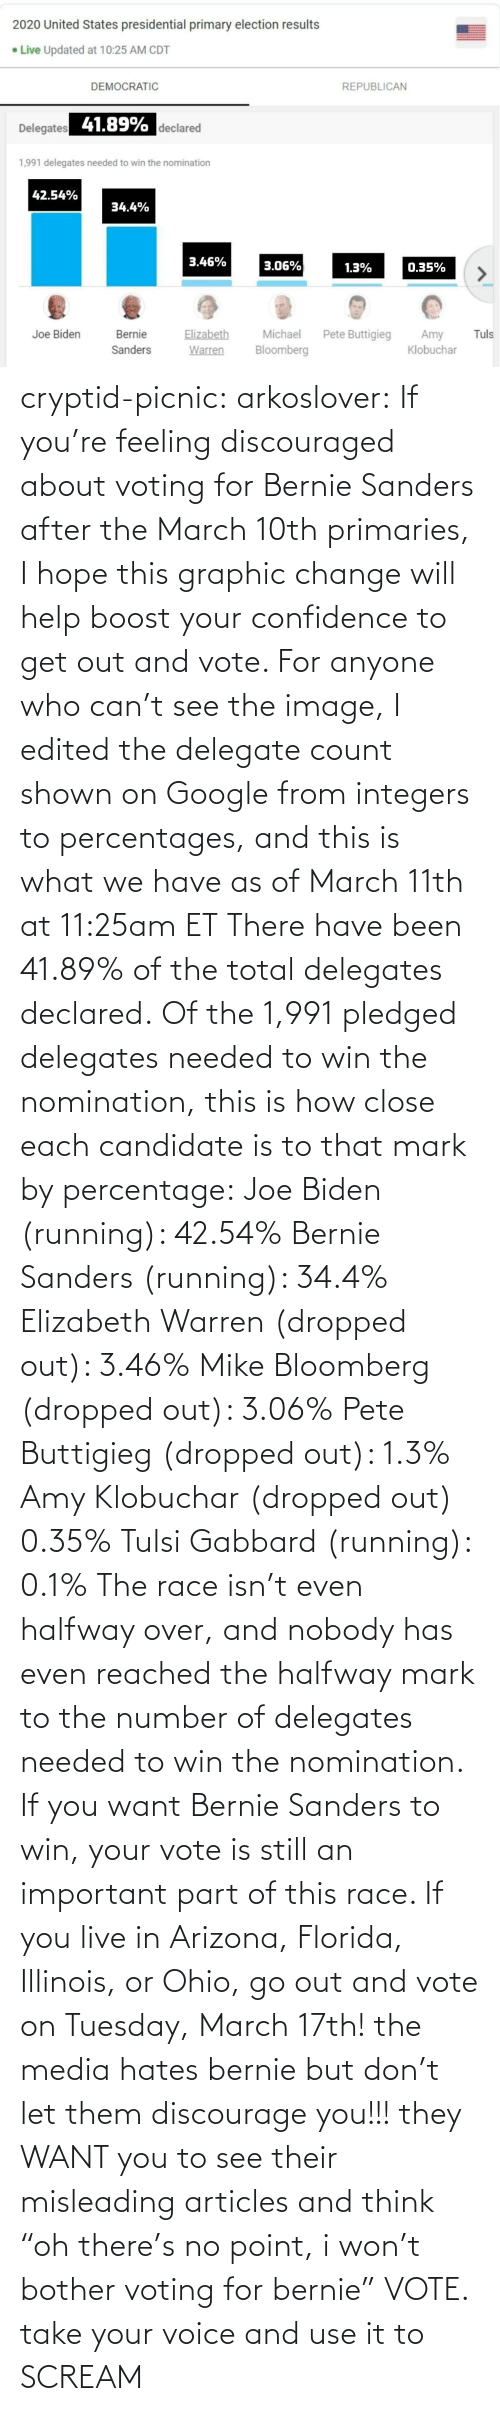 "Voice: cryptid-picnic: arkoslover:   If you're feeling discouraged about voting for Bernie Sanders after the March 10th primaries, I hope this graphic change will help boost your confidence to get out and vote. For anyone who can't see the image, I edited the delegate count shown on Google from integers to percentages, and this is what we have as of March 11th at 11:25am ET There have been 41.89% of the total delegates declared. Of the 1,991 pledged delegates needed to win the nomination, this is how close each candidate is to that mark by percentage: Joe Biden (running): 42.54% Bernie Sanders (running): 34.4% Elizabeth Warren (dropped out): 3.46% Mike Bloomberg (dropped out): 3.06% Pete Buttigieg (dropped out): 1.3% Amy Klobuchar (dropped out) 0.35% Tulsi Gabbard (running): 0.1% The race isn't even halfway over, and nobody has even reached the halfway mark to the number of delegates needed to win the nomination. If you want Bernie Sanders to win, your vote is still an important part of this race. If you live in Arizona, Florida, Illinois, or Ohio, go out and vote on Tuesday, March 17th!    the media hates bernie but don't let them discourage you!!! they WANT you to see their misleading articles and think ""oh there's no point, i won't bother voting for bernie"" VOTE. take your voice and use it to SCREAM"